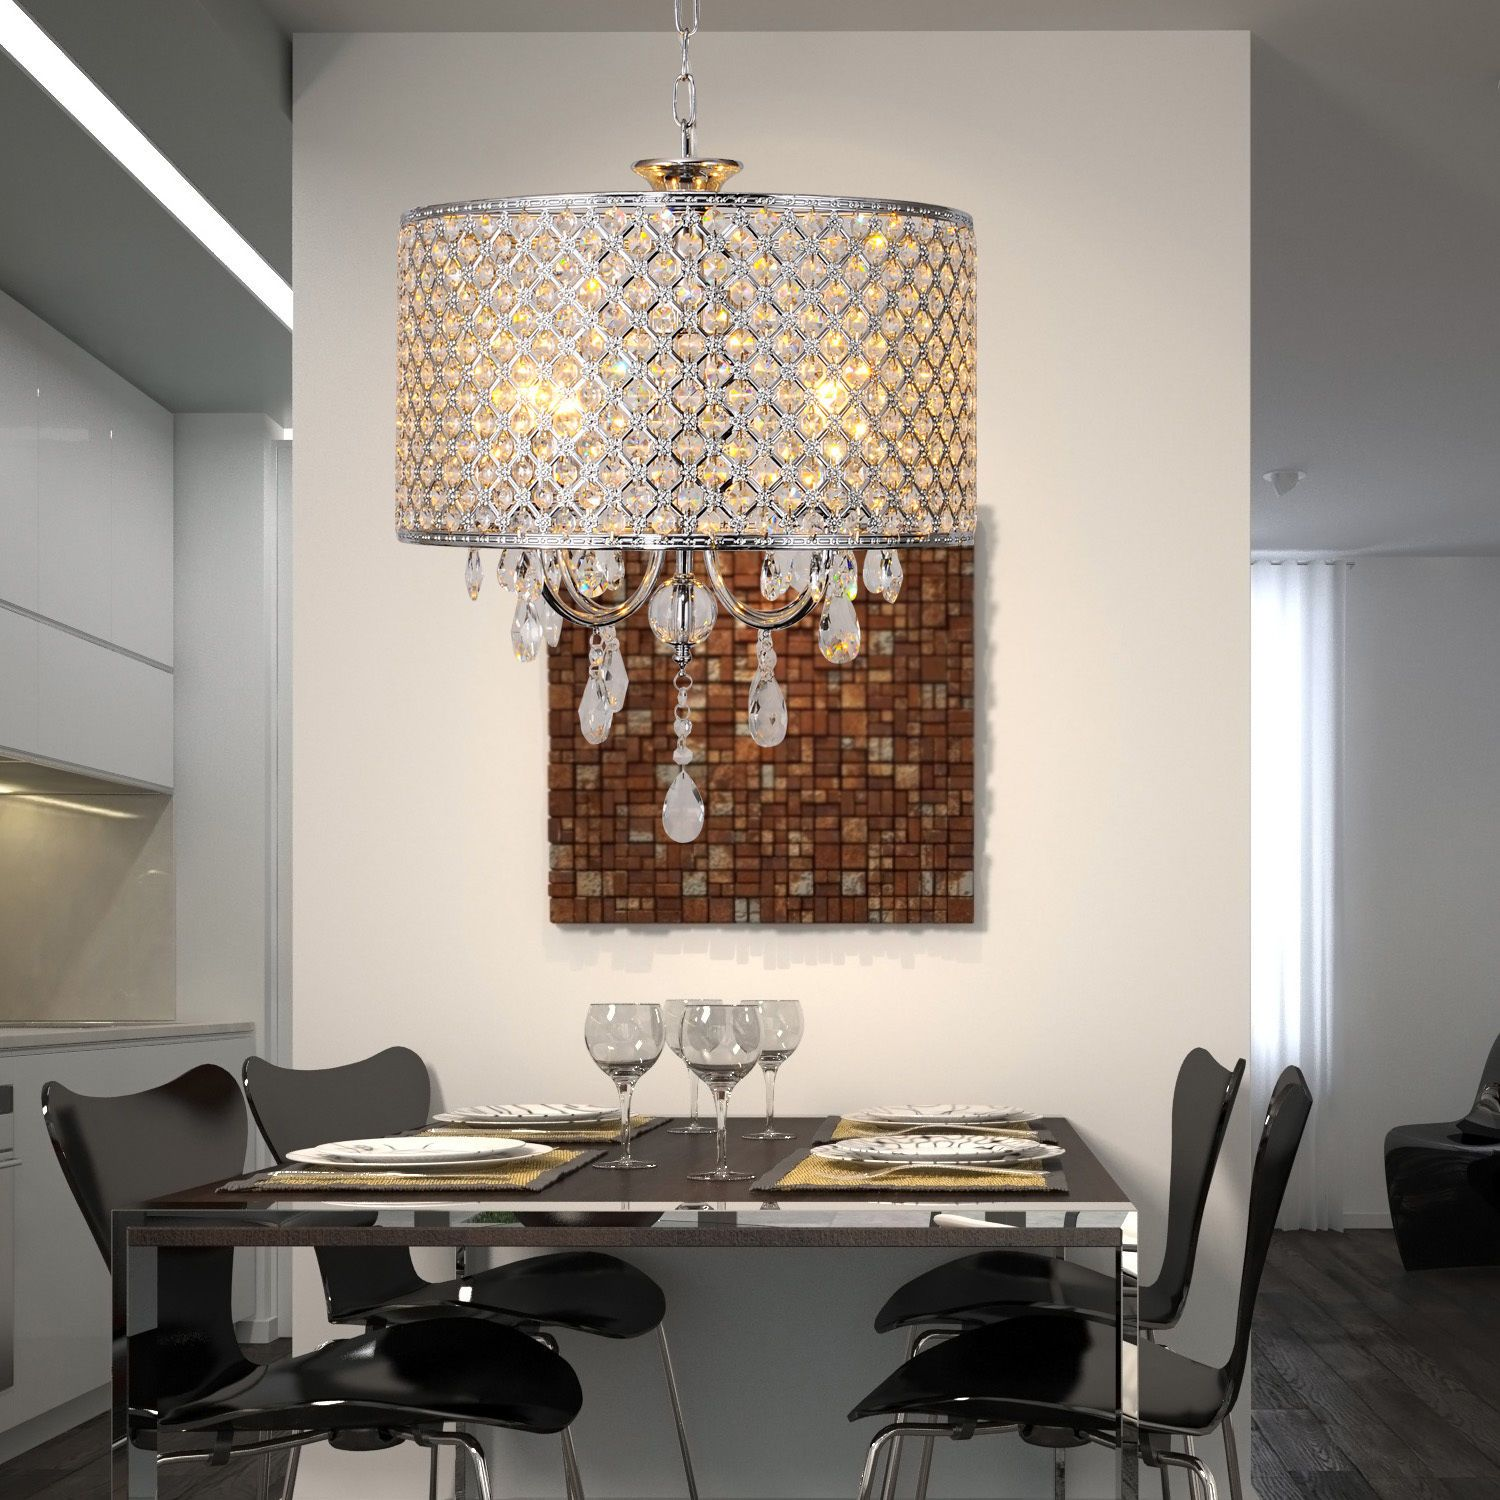 Contemporary Chandeliers For Dining Room Amazing Lamp New Contemporary Fabric Drum Shade Ceiling Light Fixture Design Ideas